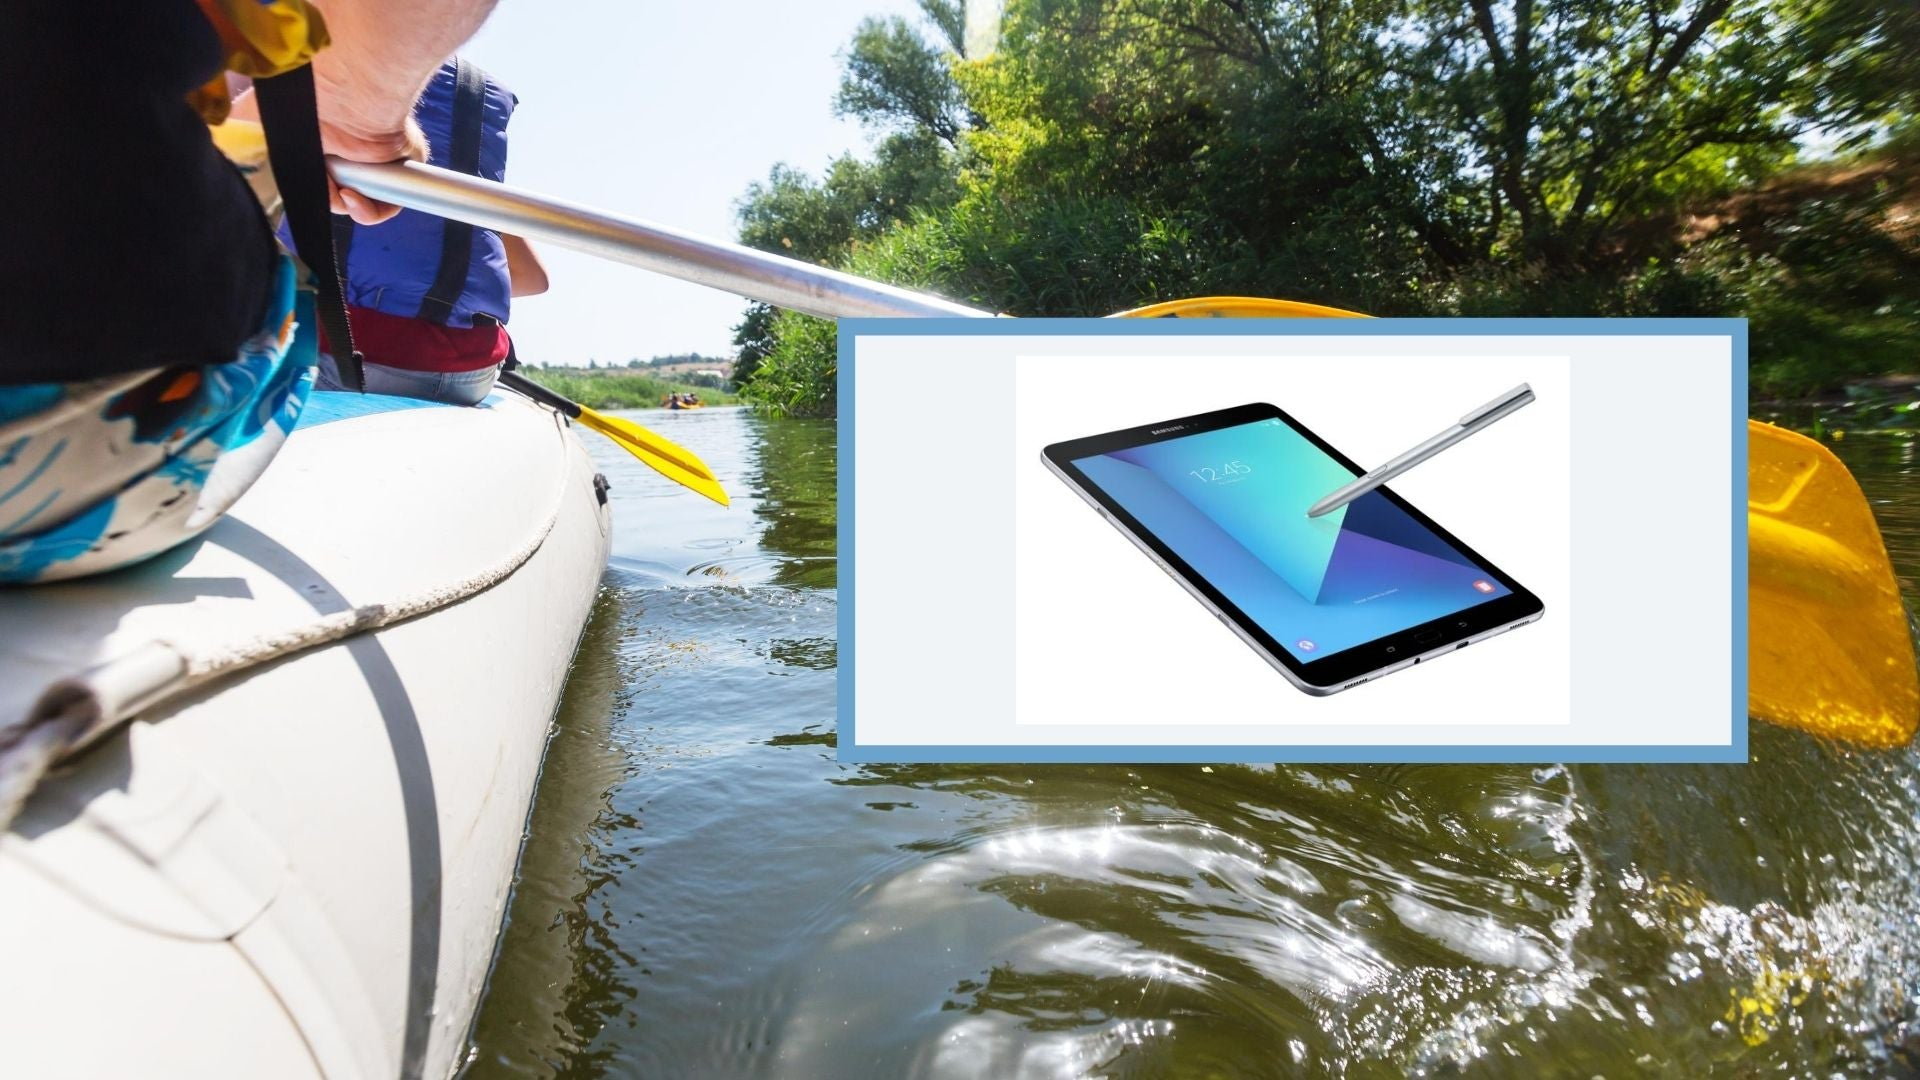 Waterproof Cases for Samsung Tablets